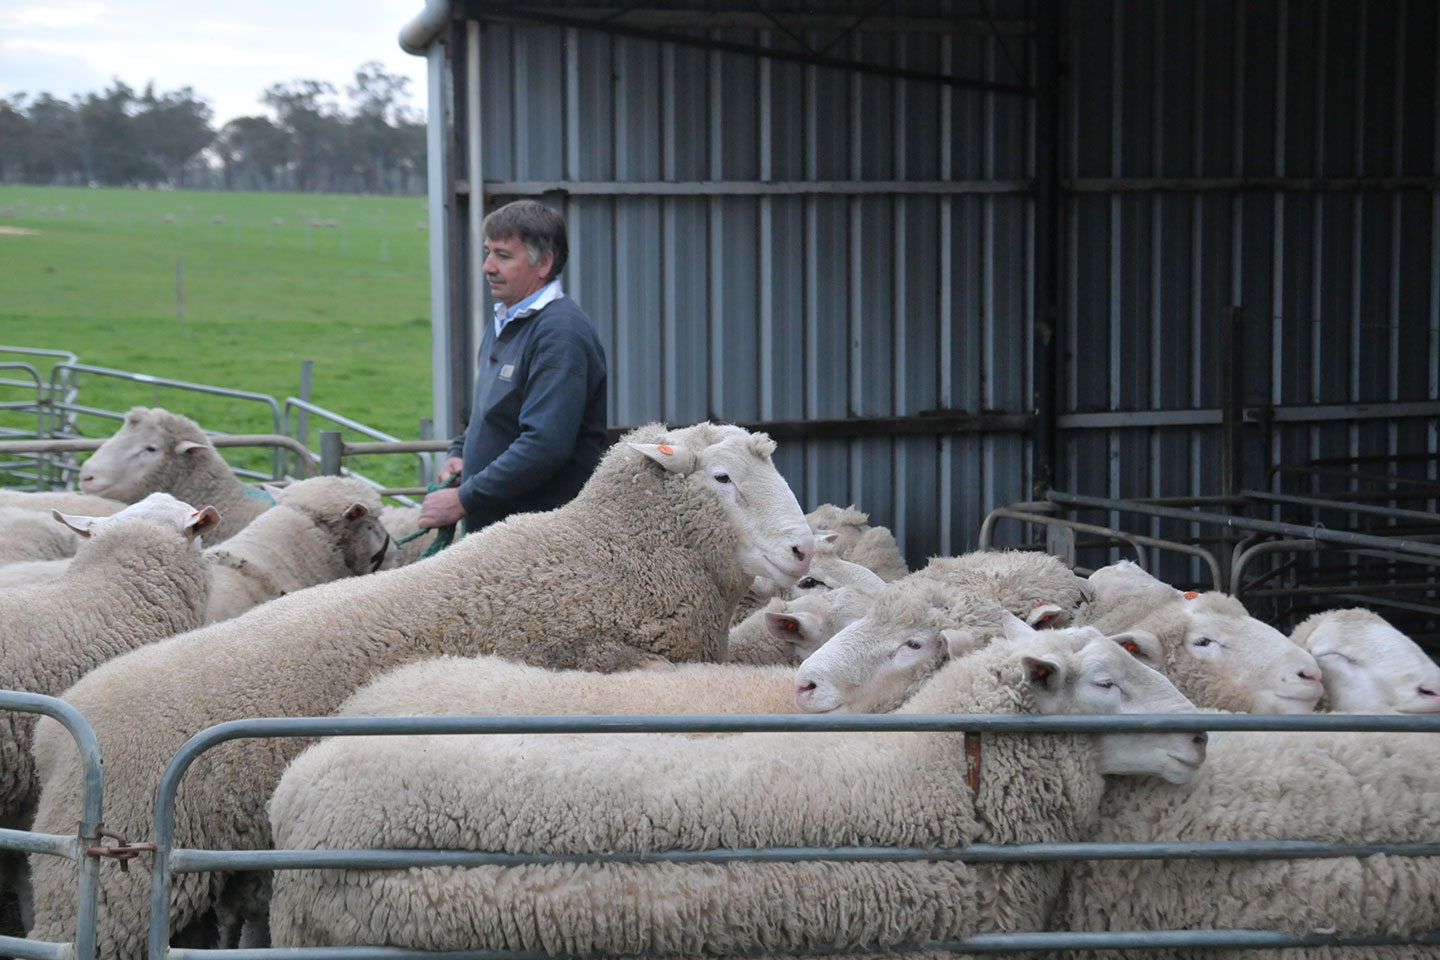 Farmer Confidence Boosted By Wet Months Business News